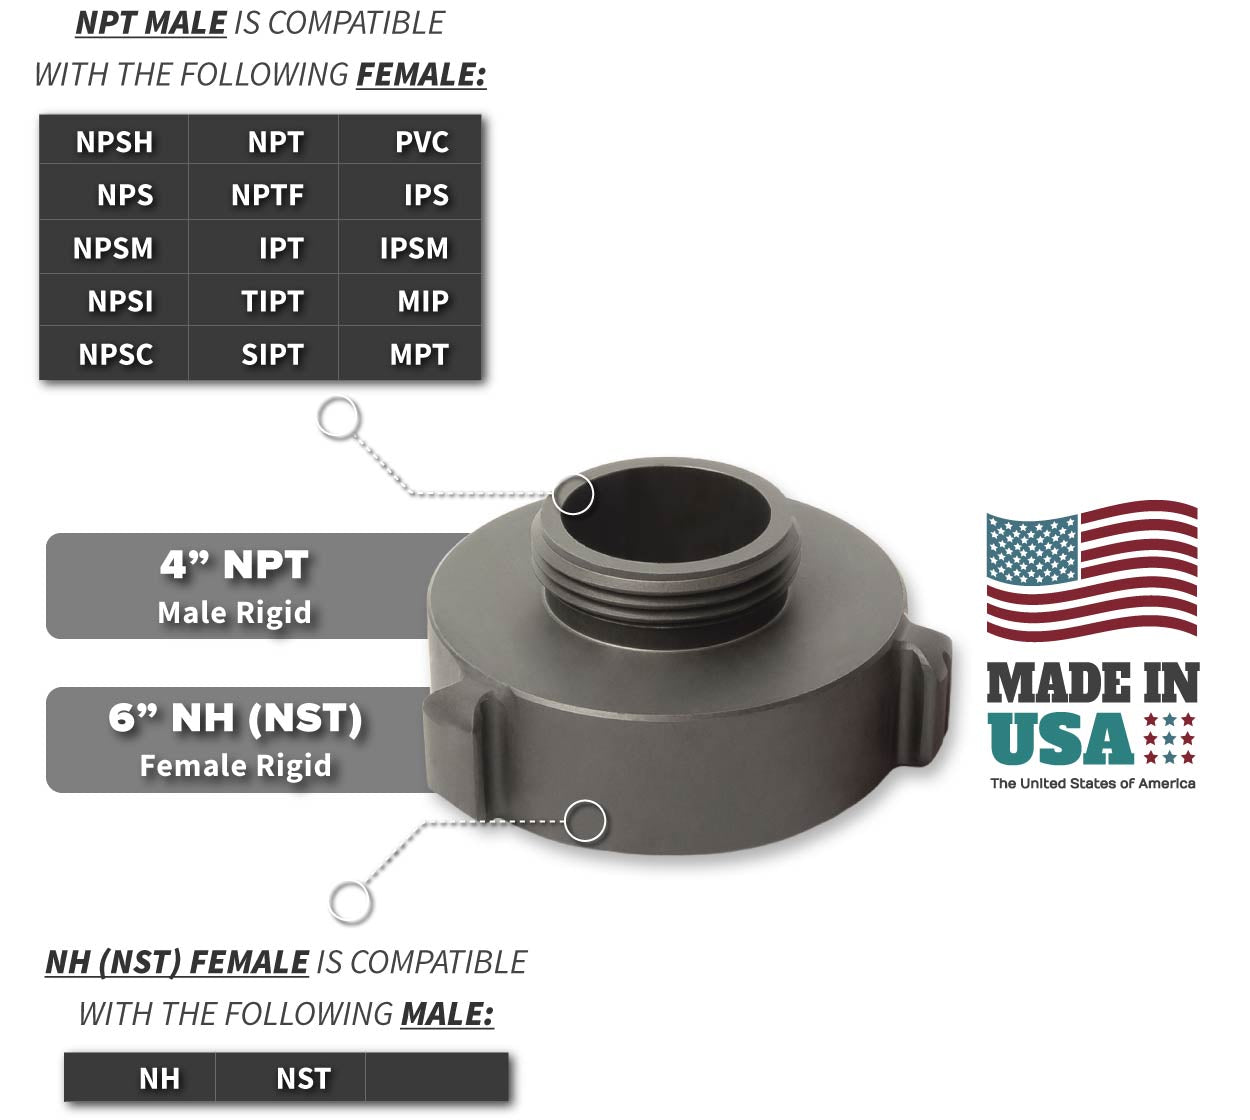 6 Inch NH-NST Female x 4 Inch NPT Male Compatibility Thread Chart